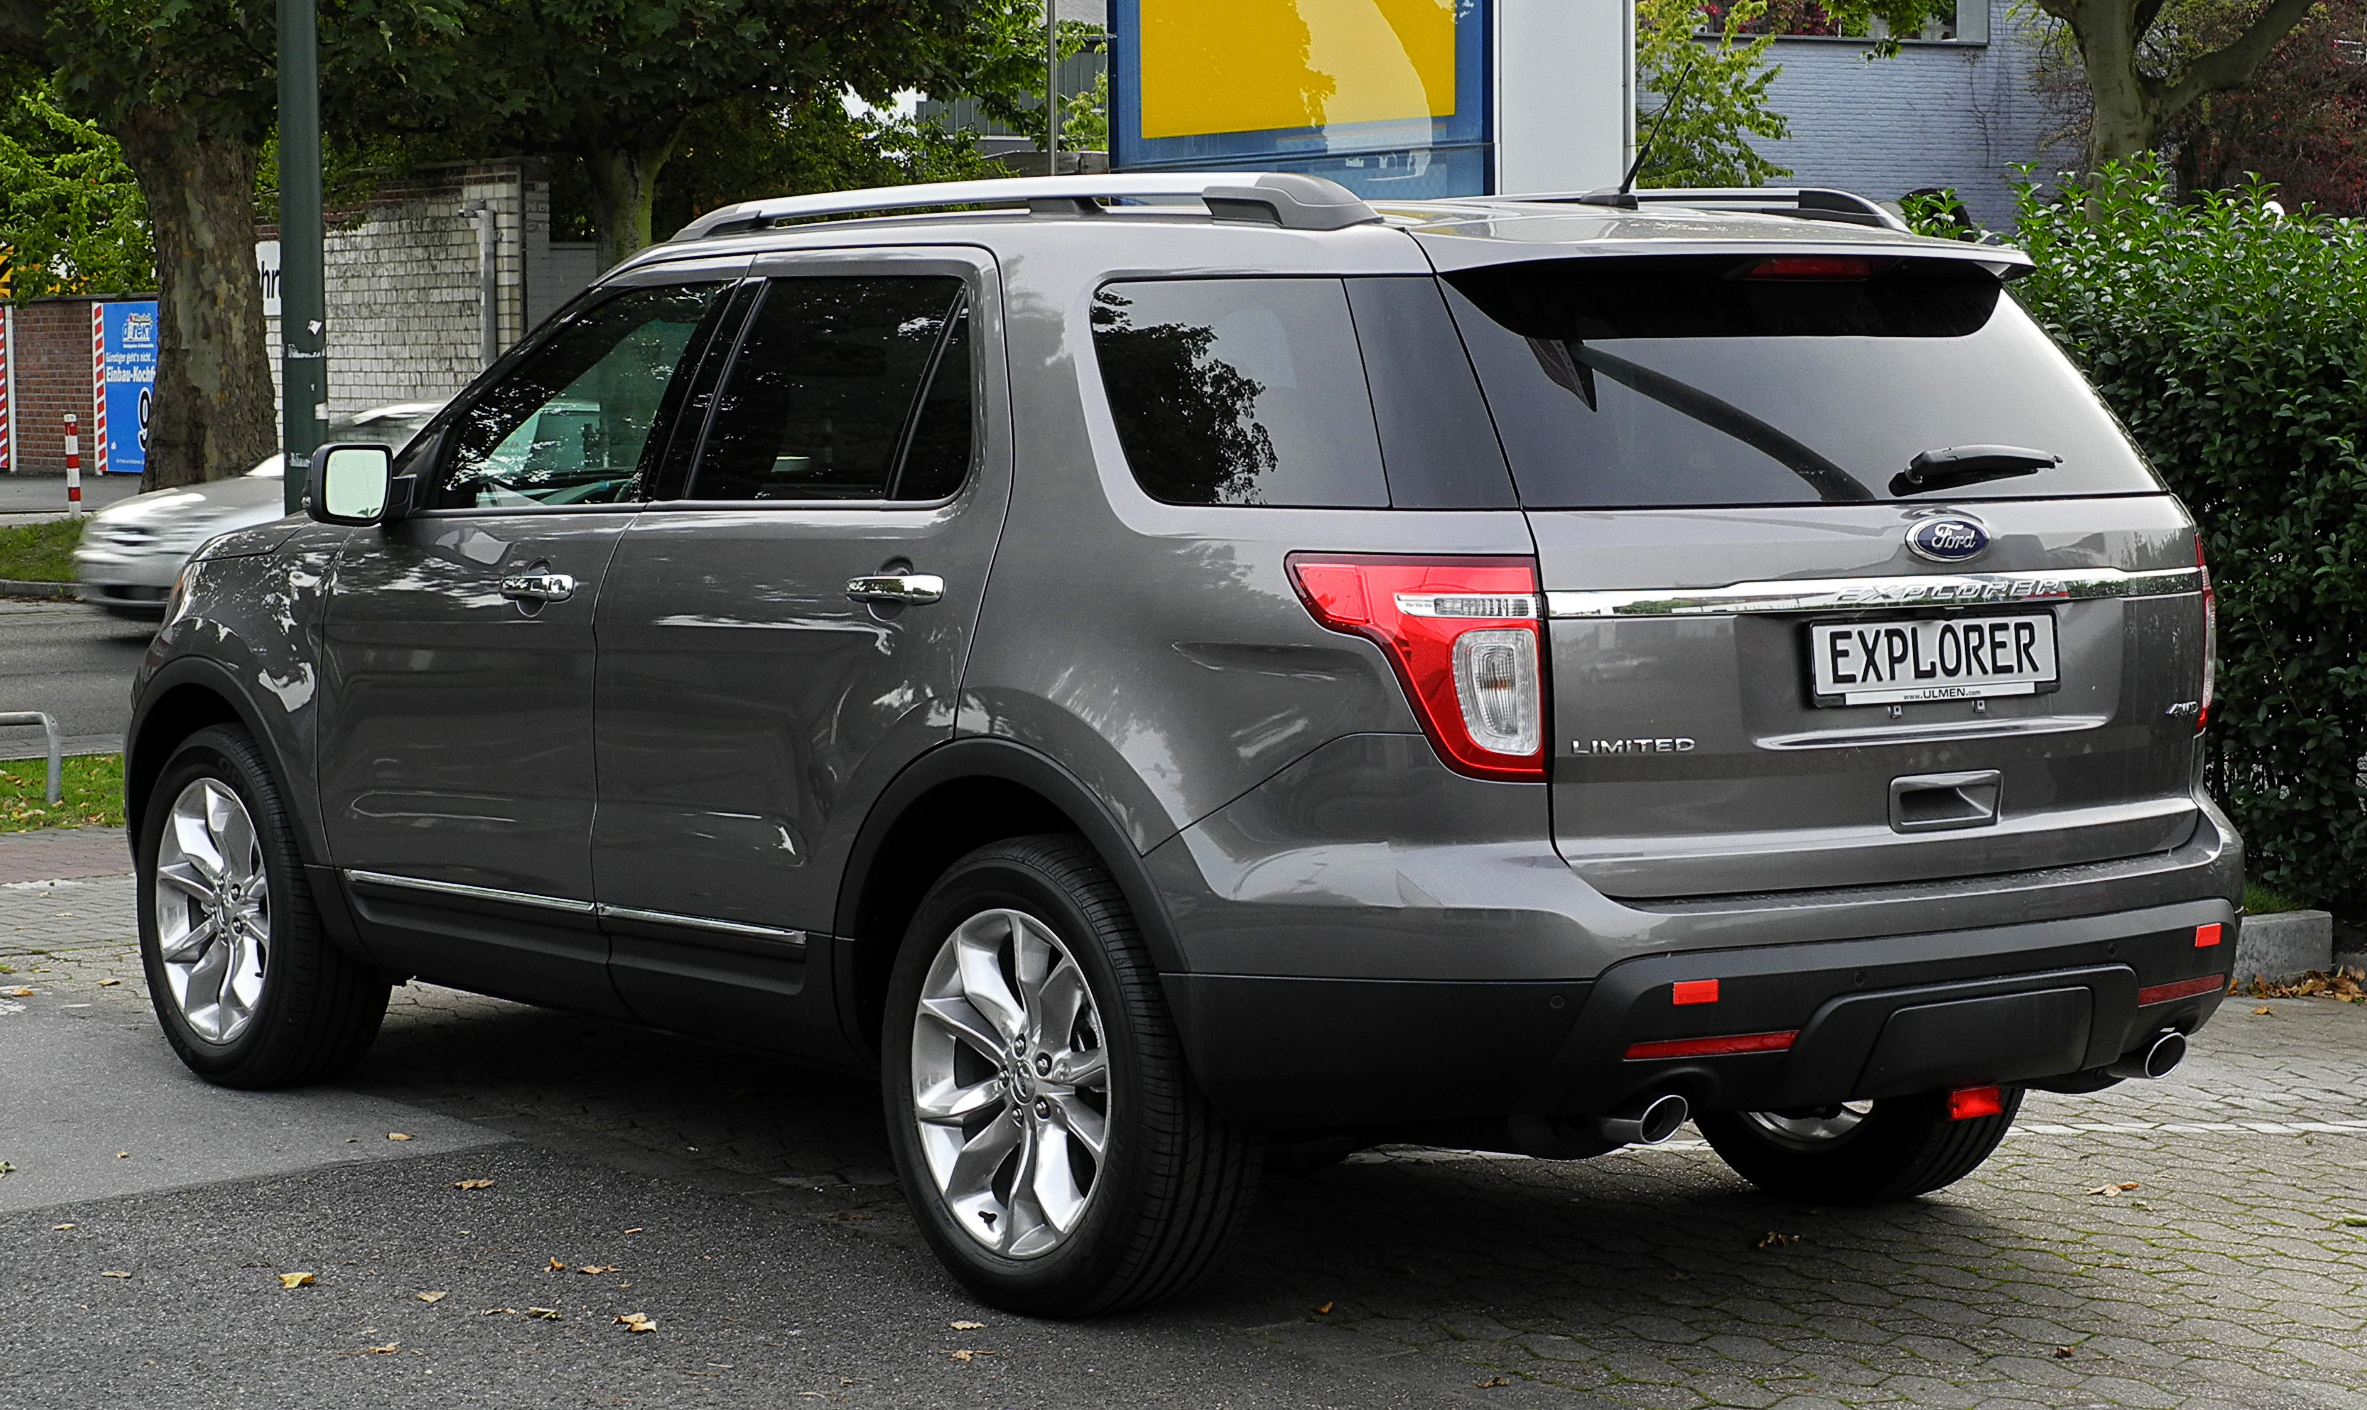 Ford Escape 2014 Custom >> File:Ford Explorer 3.5 V6 AWD Limited (V) – Heckansicht, 10. September 2011, Düsseldorf.jpg ...